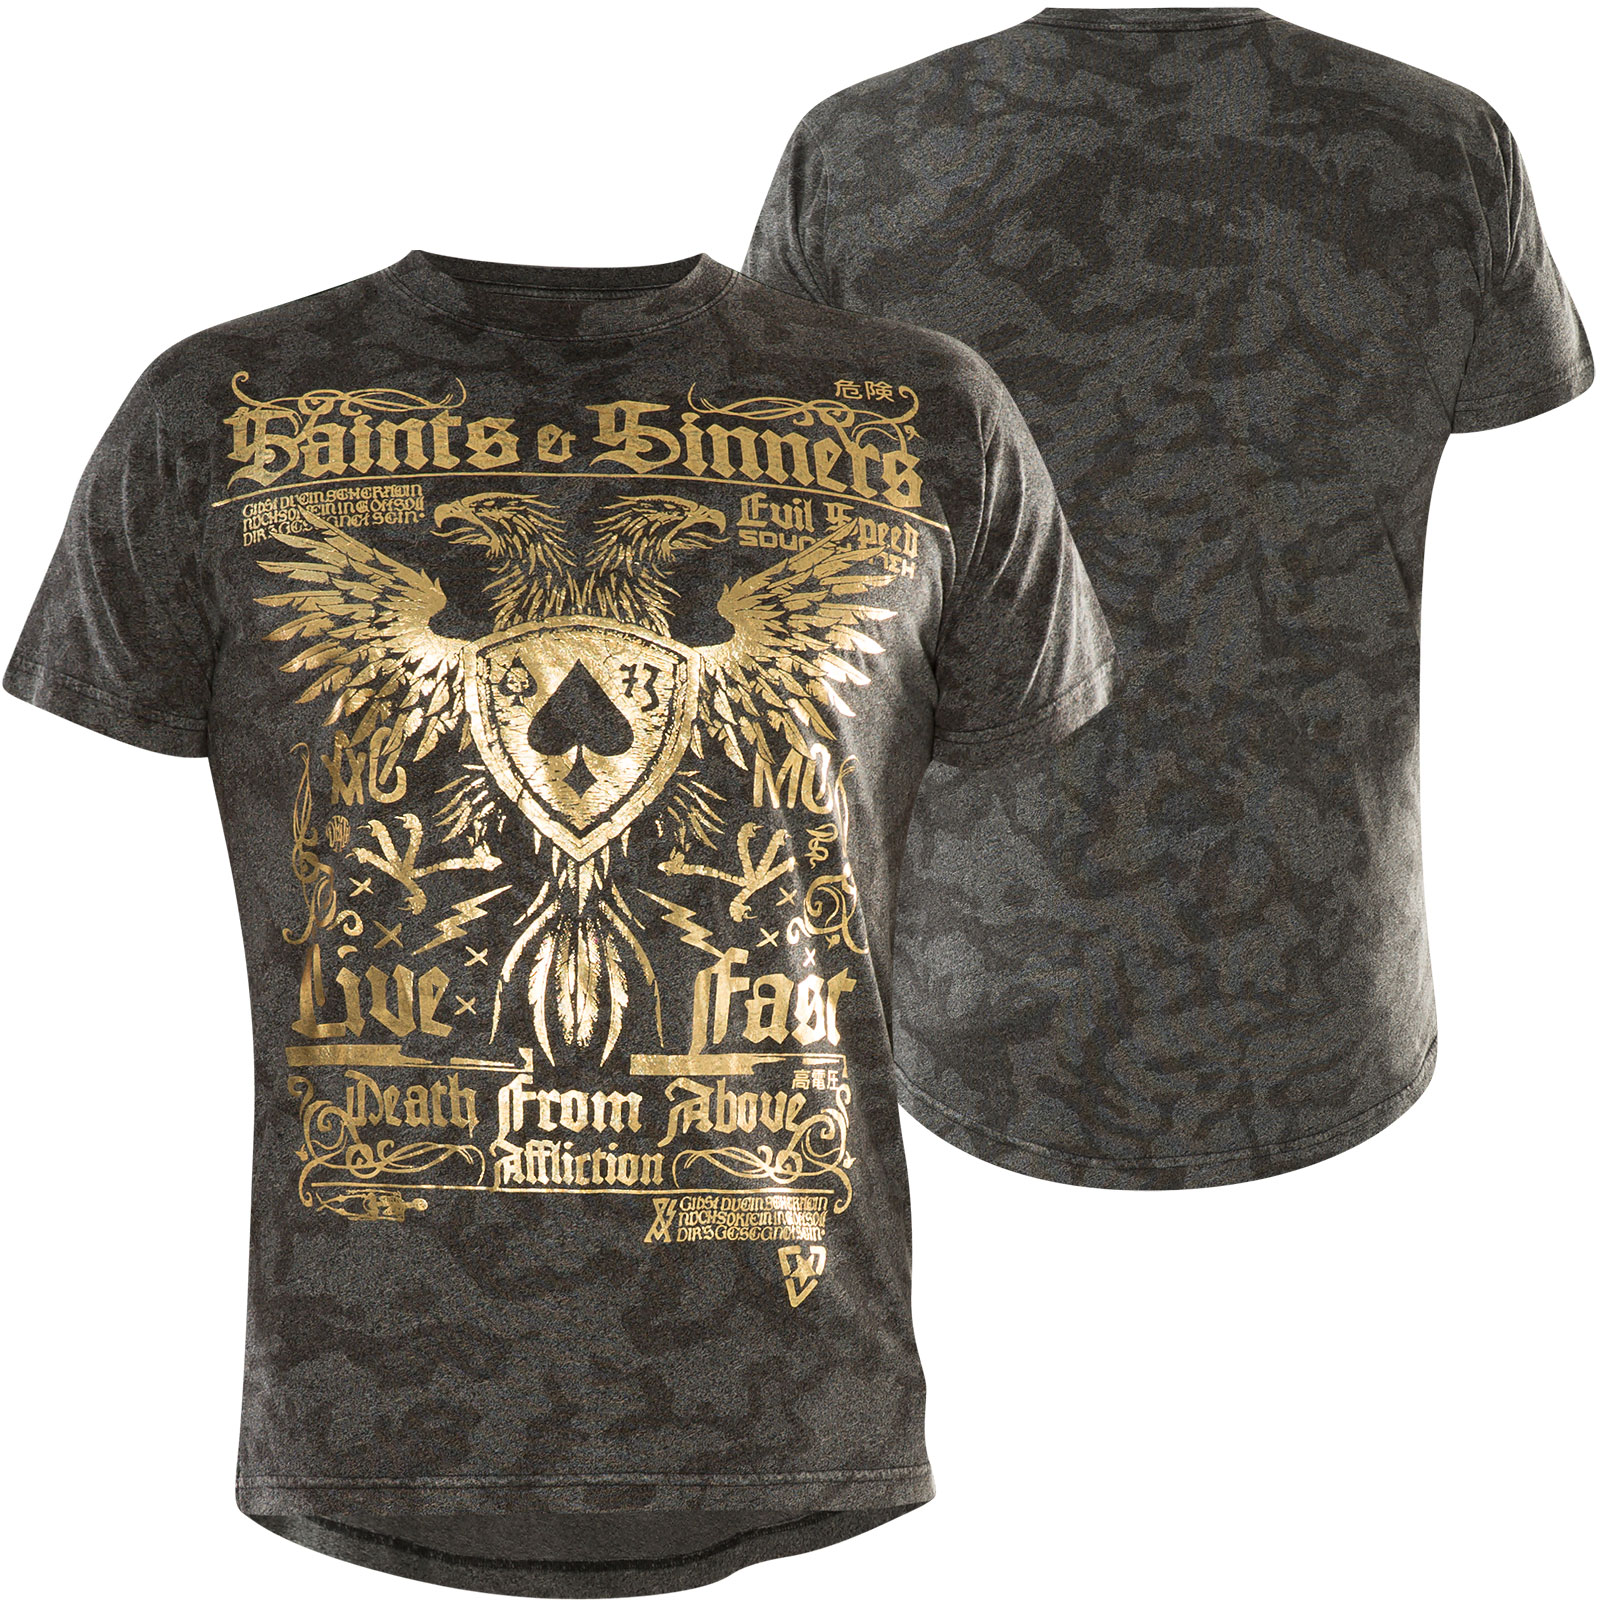 Xtreme Couture by Affliction T-Shirt Sinners